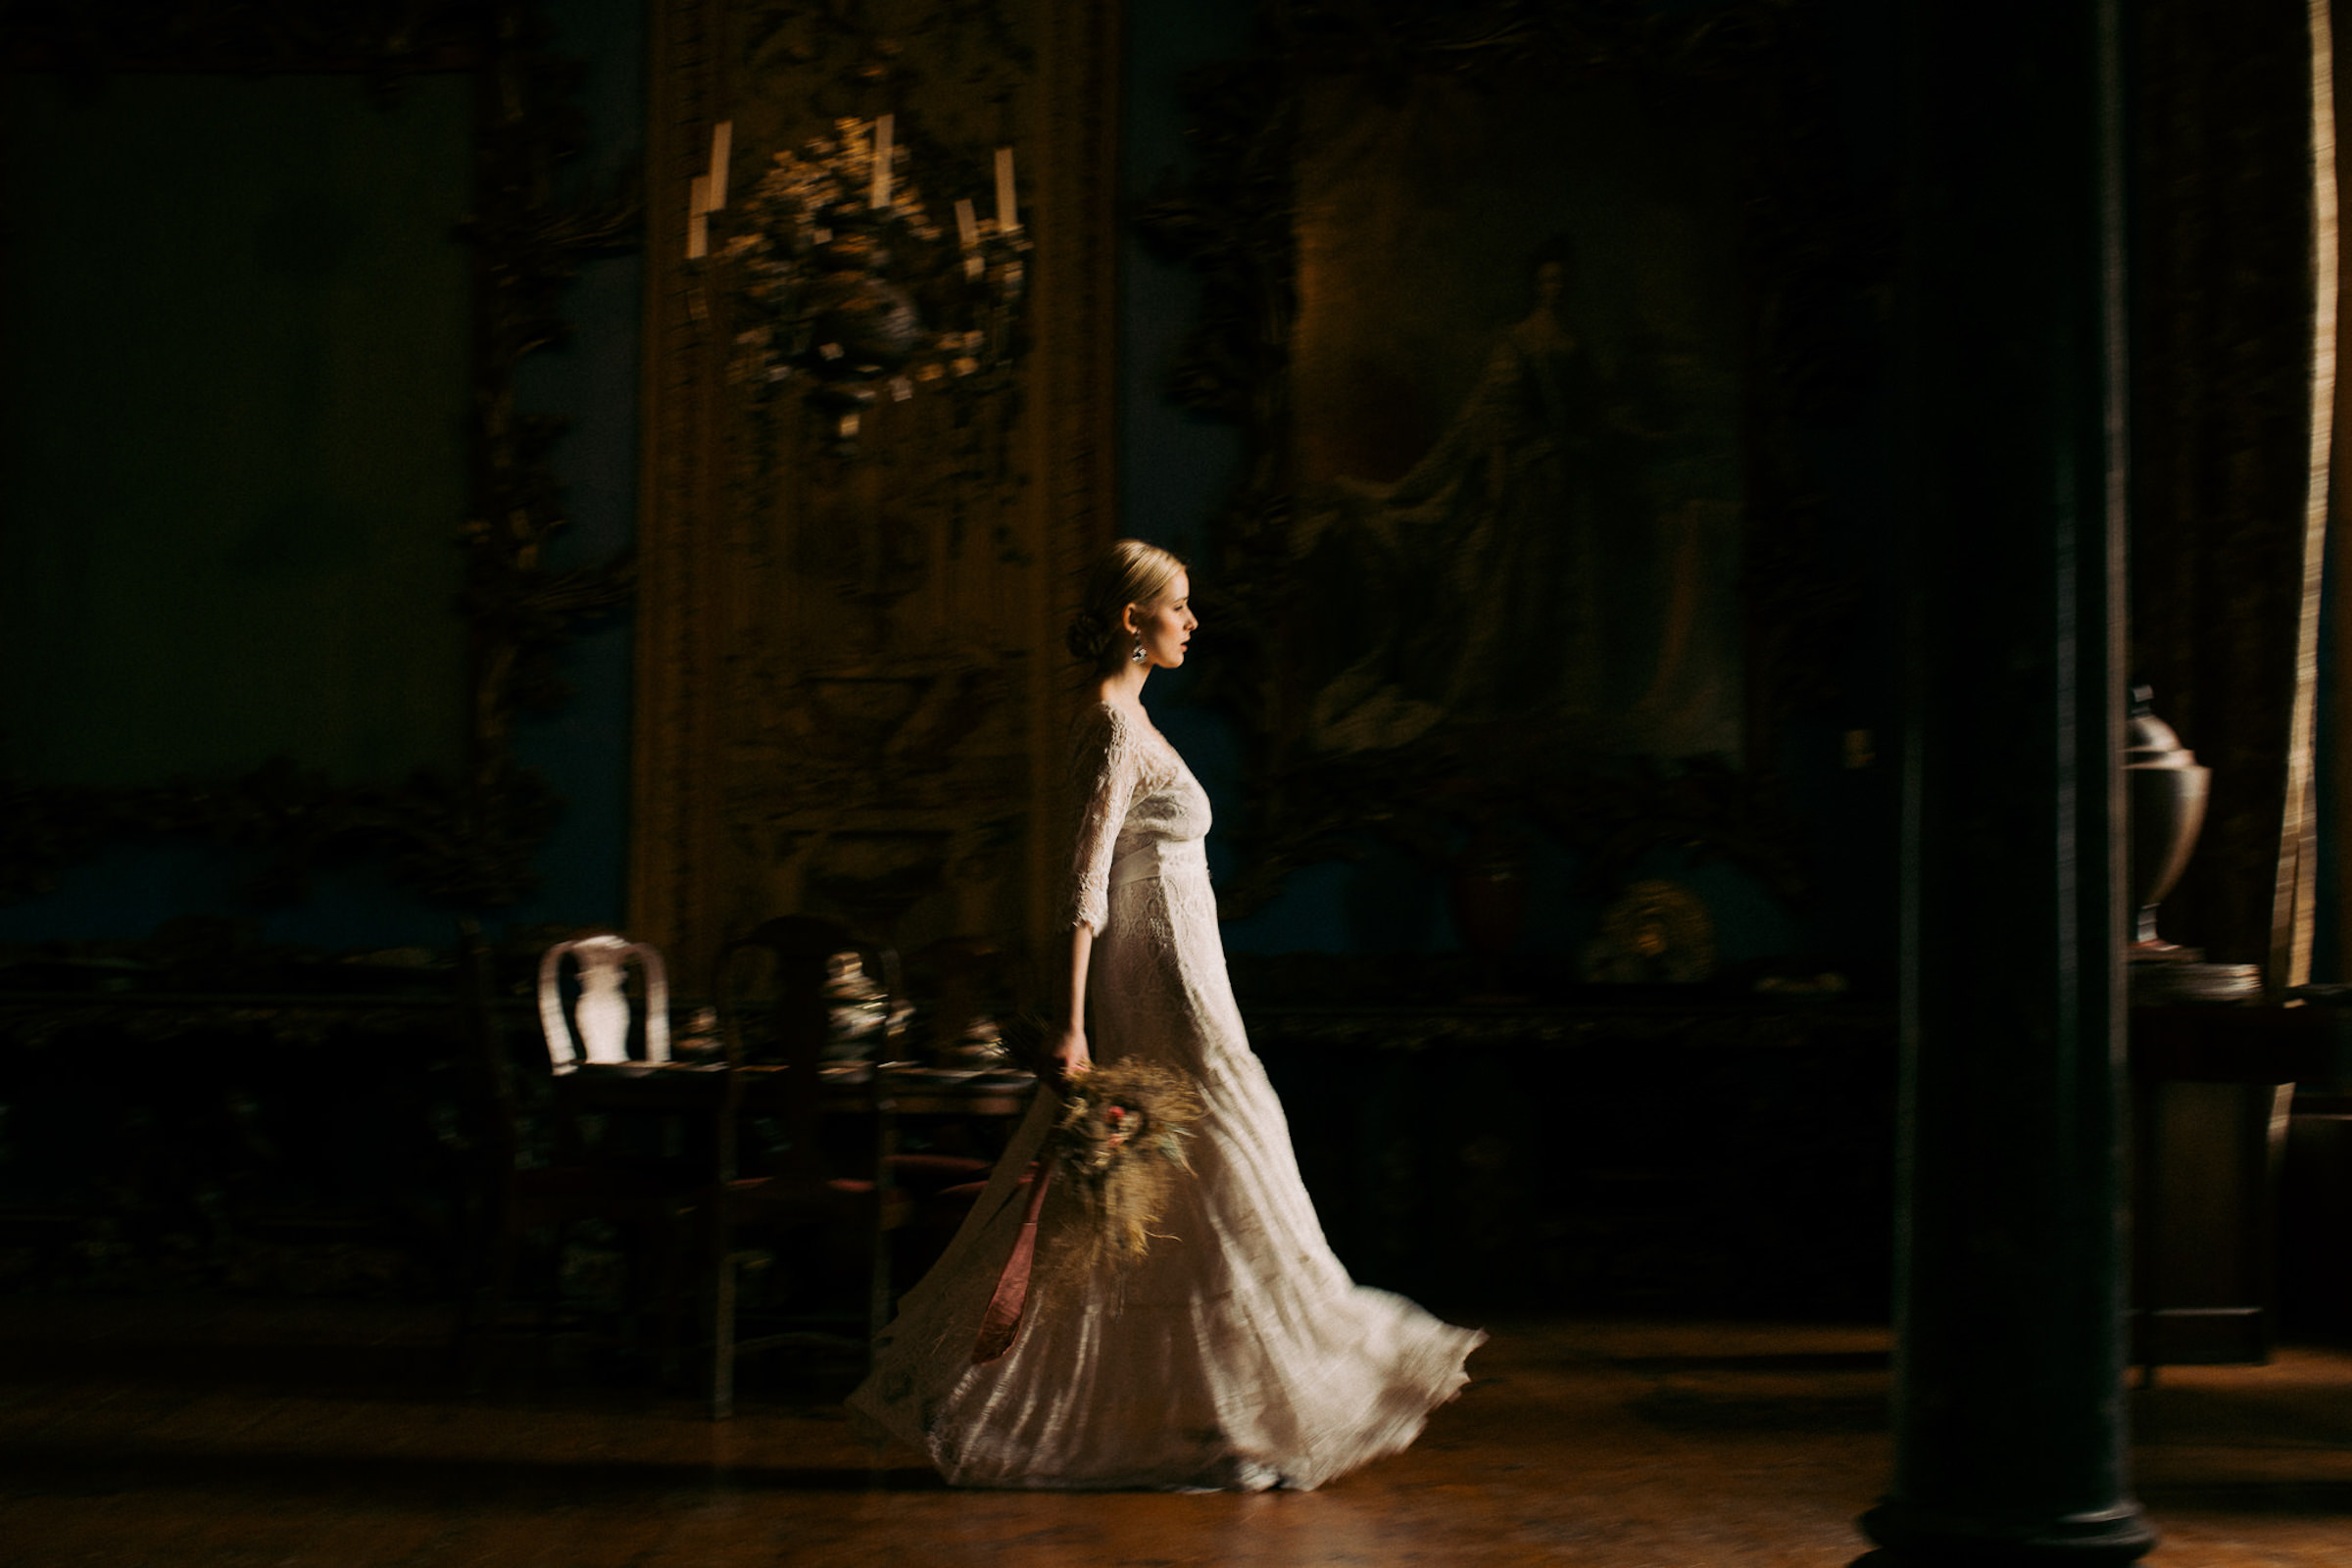 Bride in lace gown with 3/4 sleeves walks through old mansion -  photo by White Cat Studio